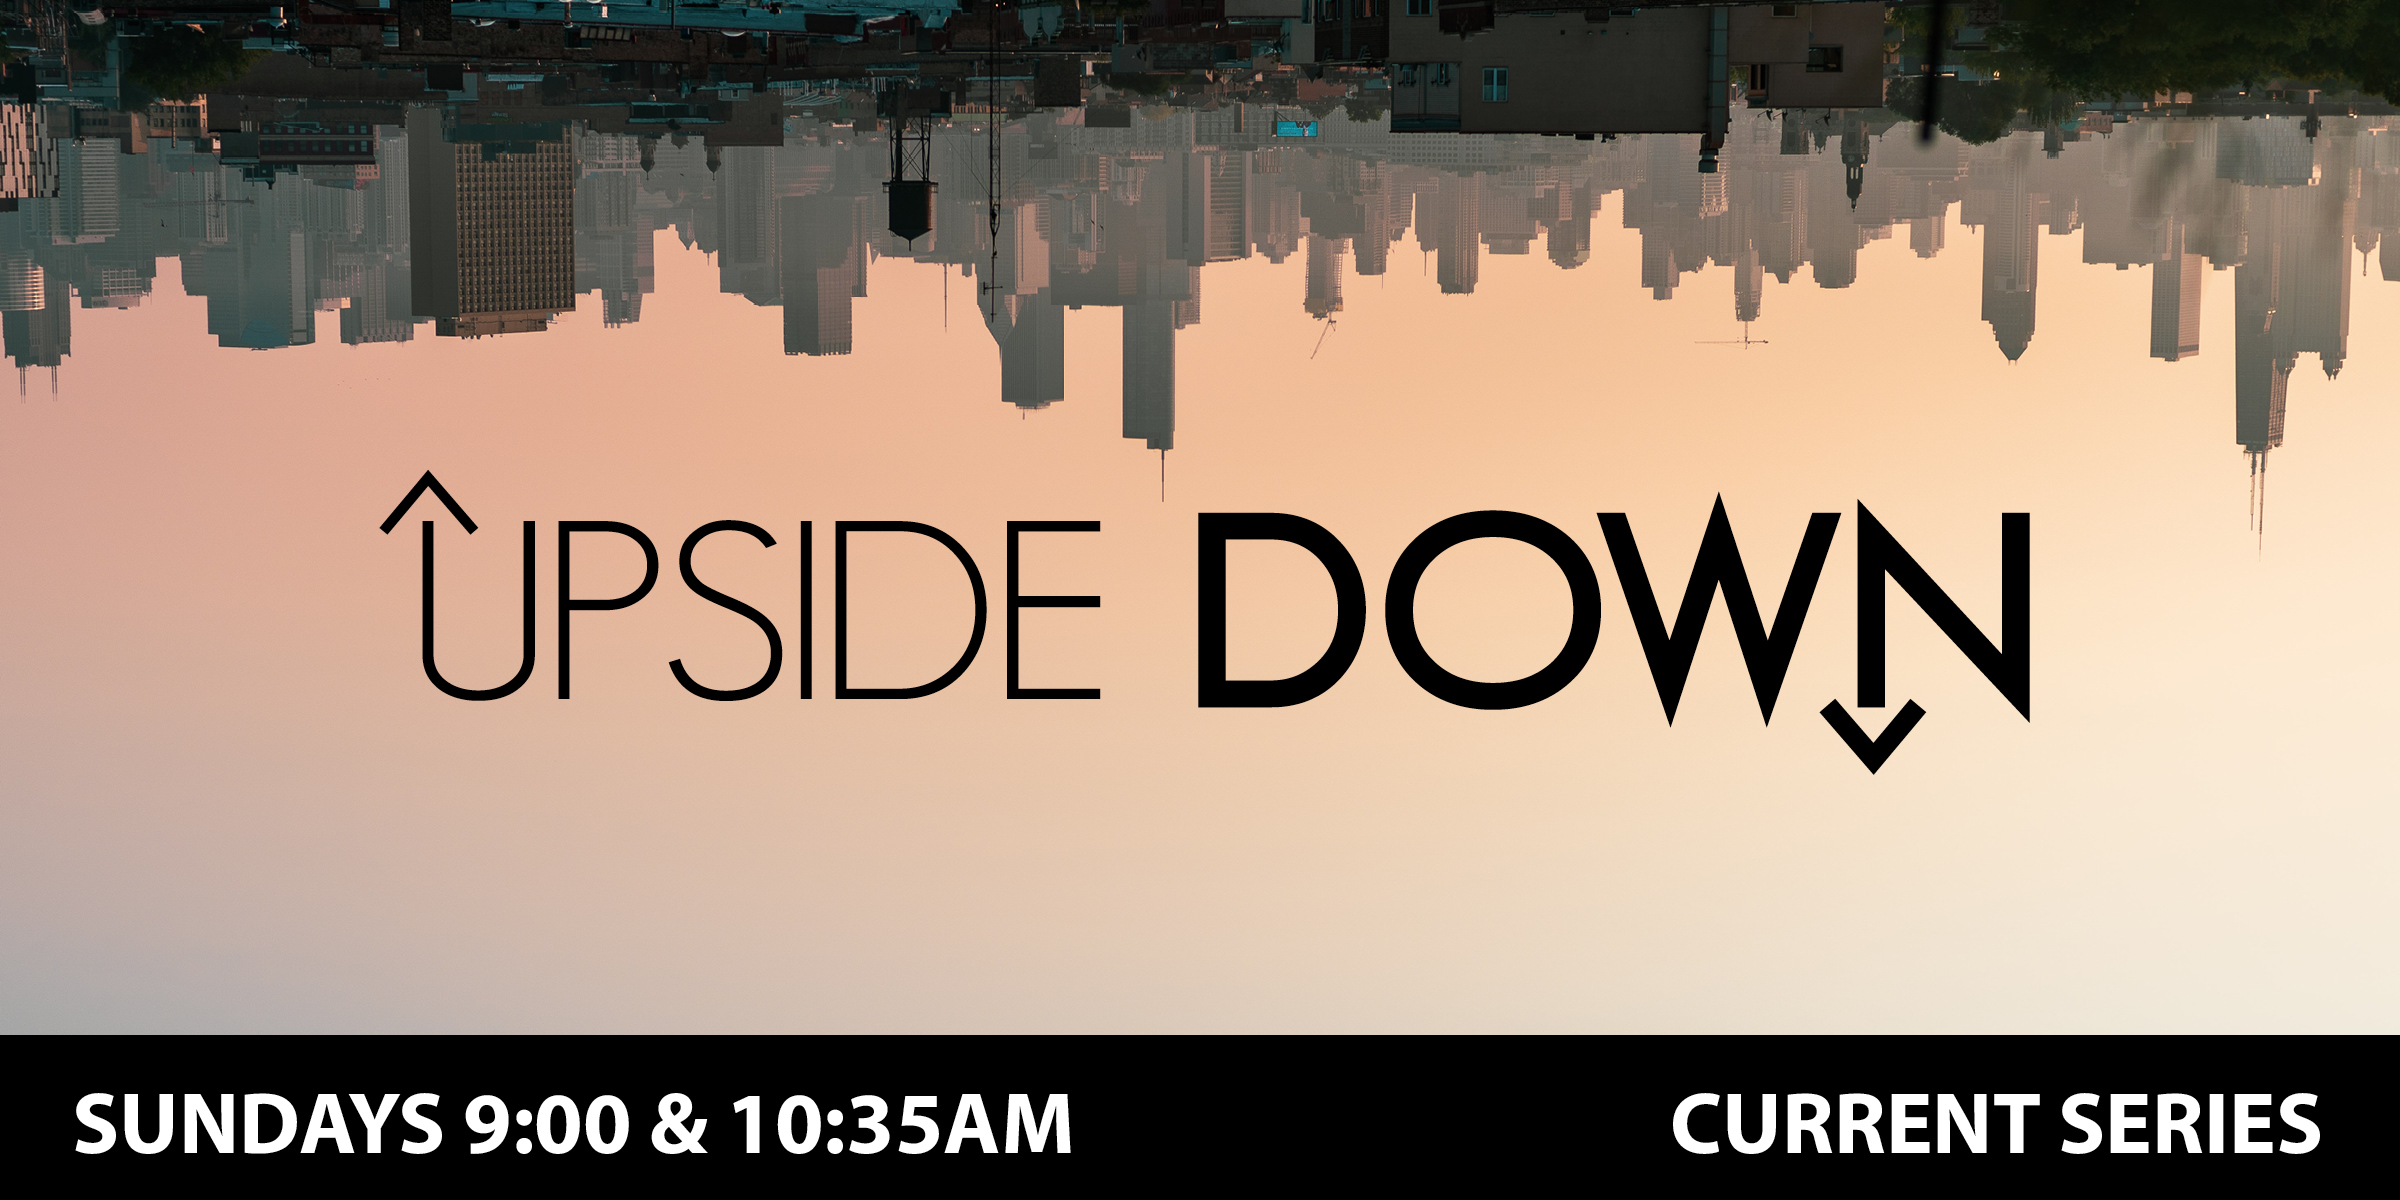 Upside Down - Current Series Graphic